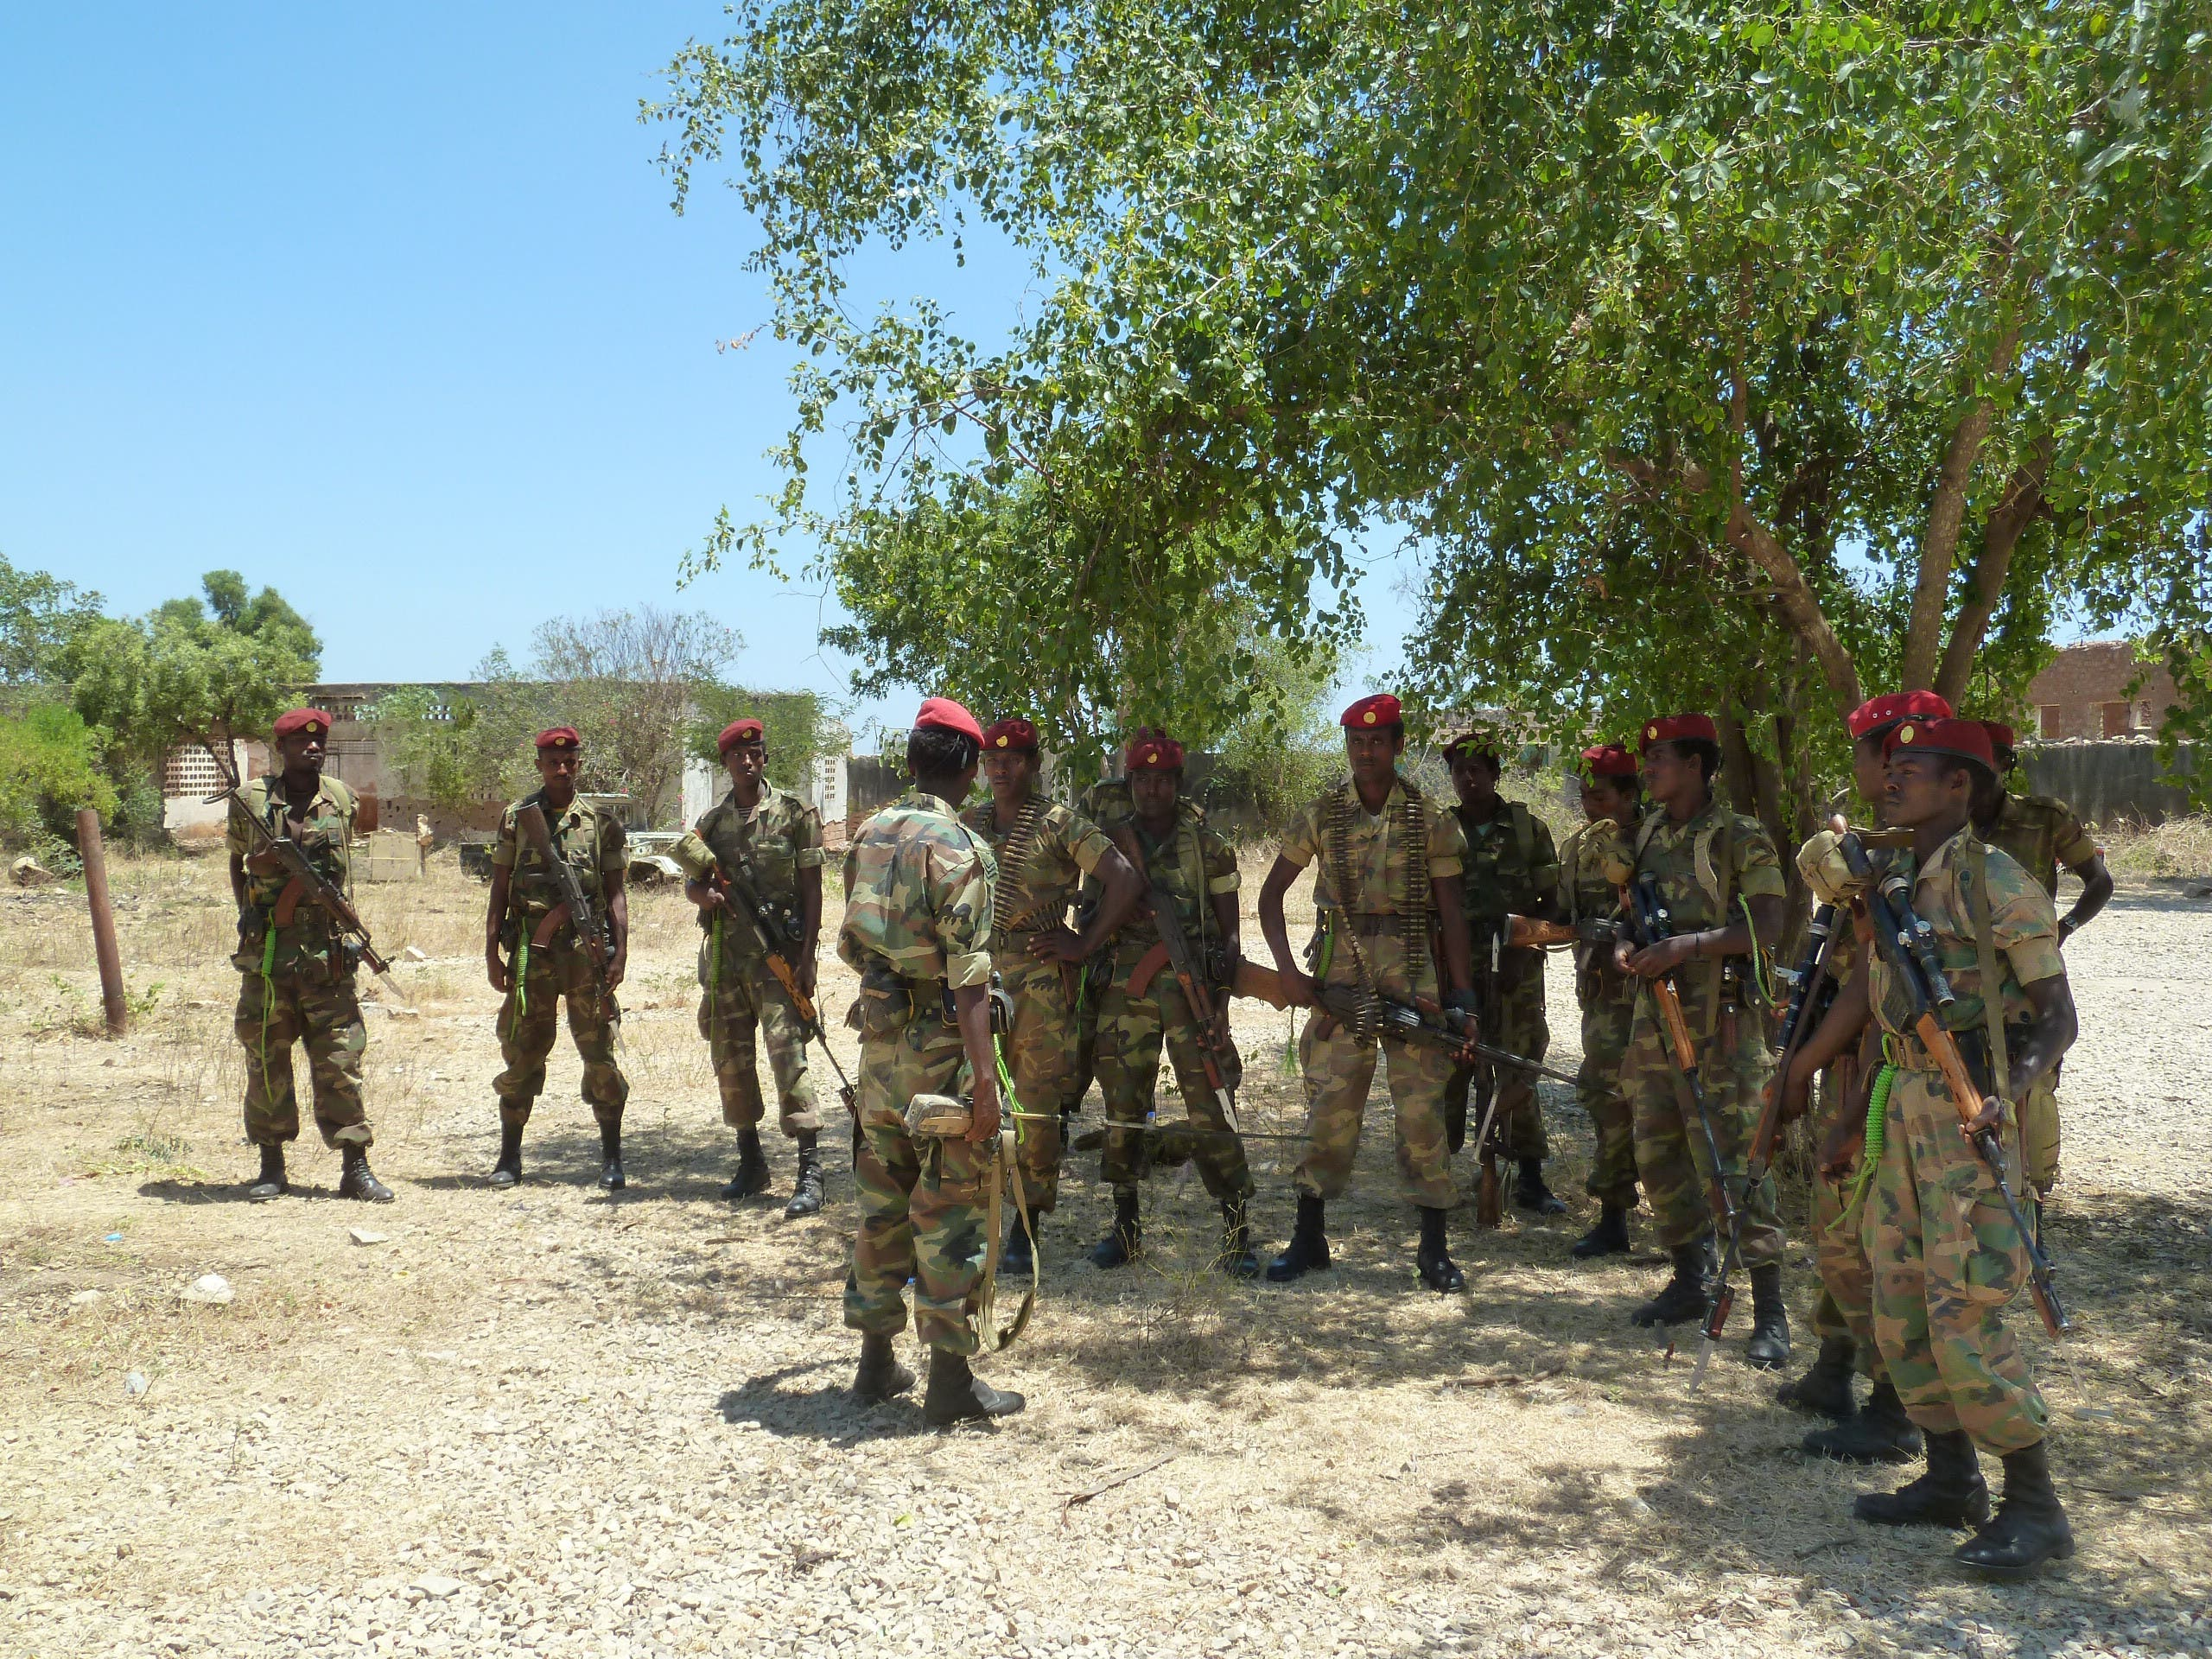 A picture taken on March 2, 2012 shows Ethiopian soldiers receiving a briefing before displaying of weapons left behind by Shebab militias at their former base in Baido, Somalia, which was taken over from al Shabab rebels on February 22. (AFP/Jenny Vaughan)